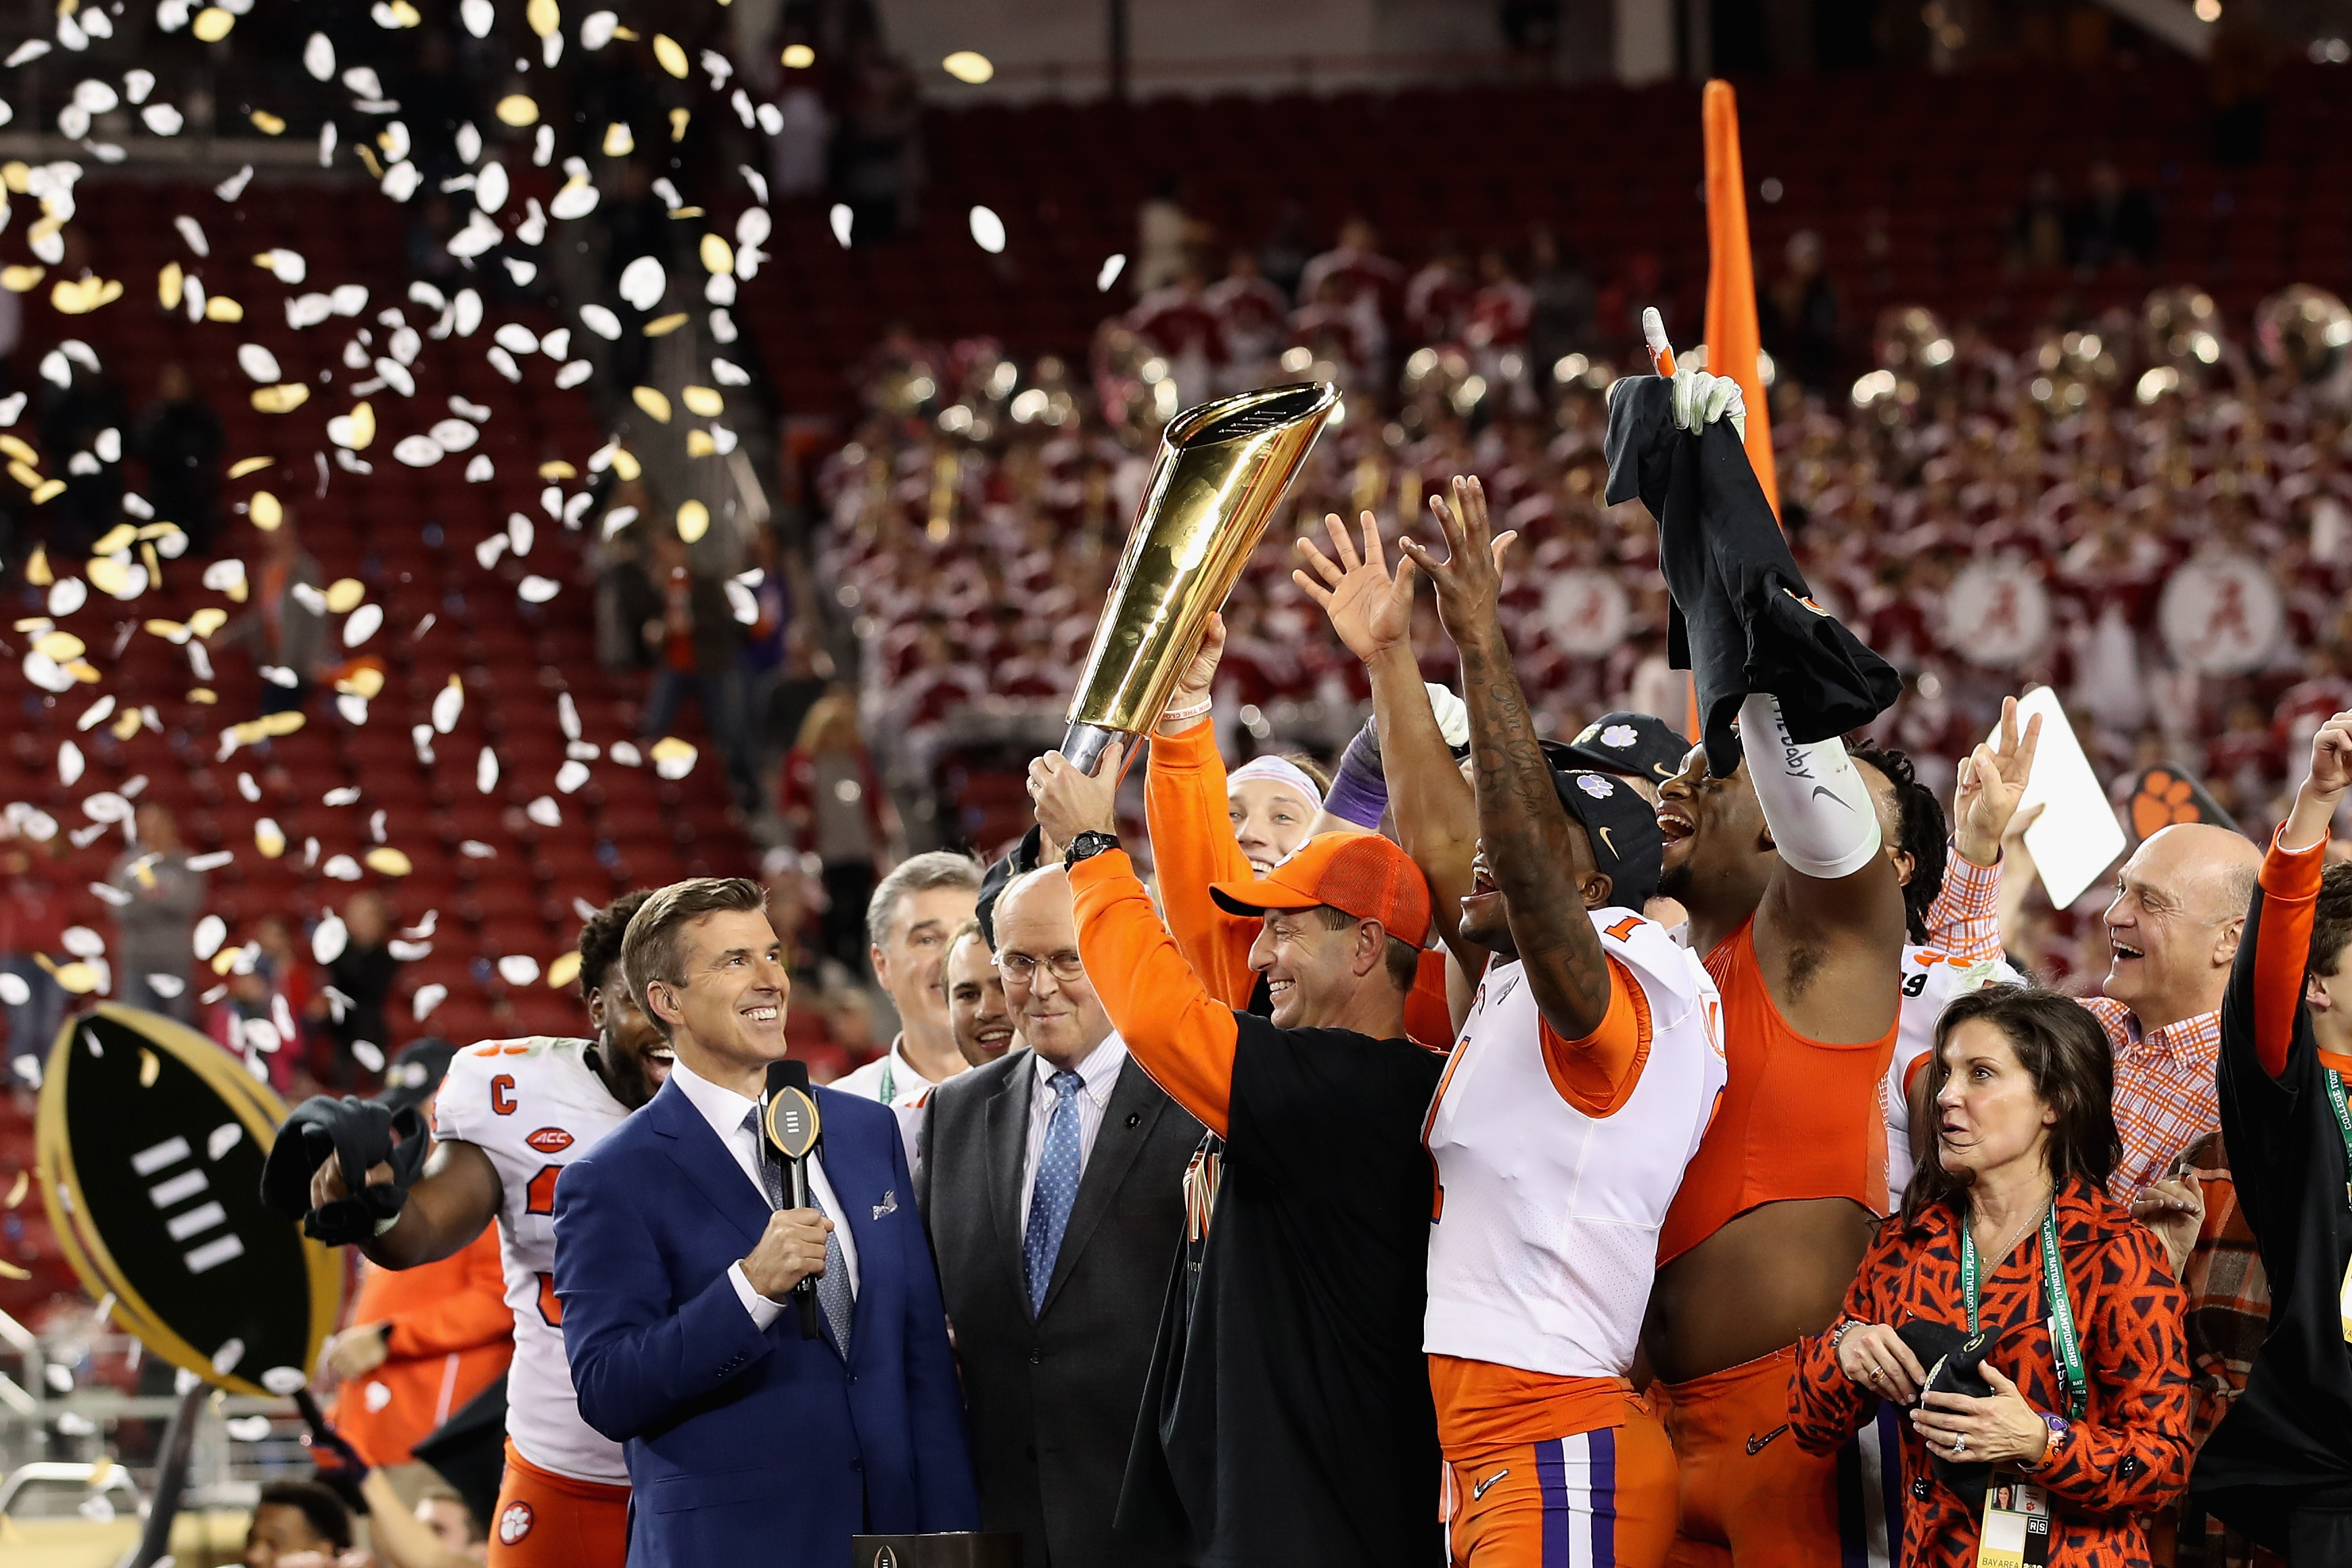 Clemson Tigers head coach Dabo Swinney and the team celebrate with the national championship trophy